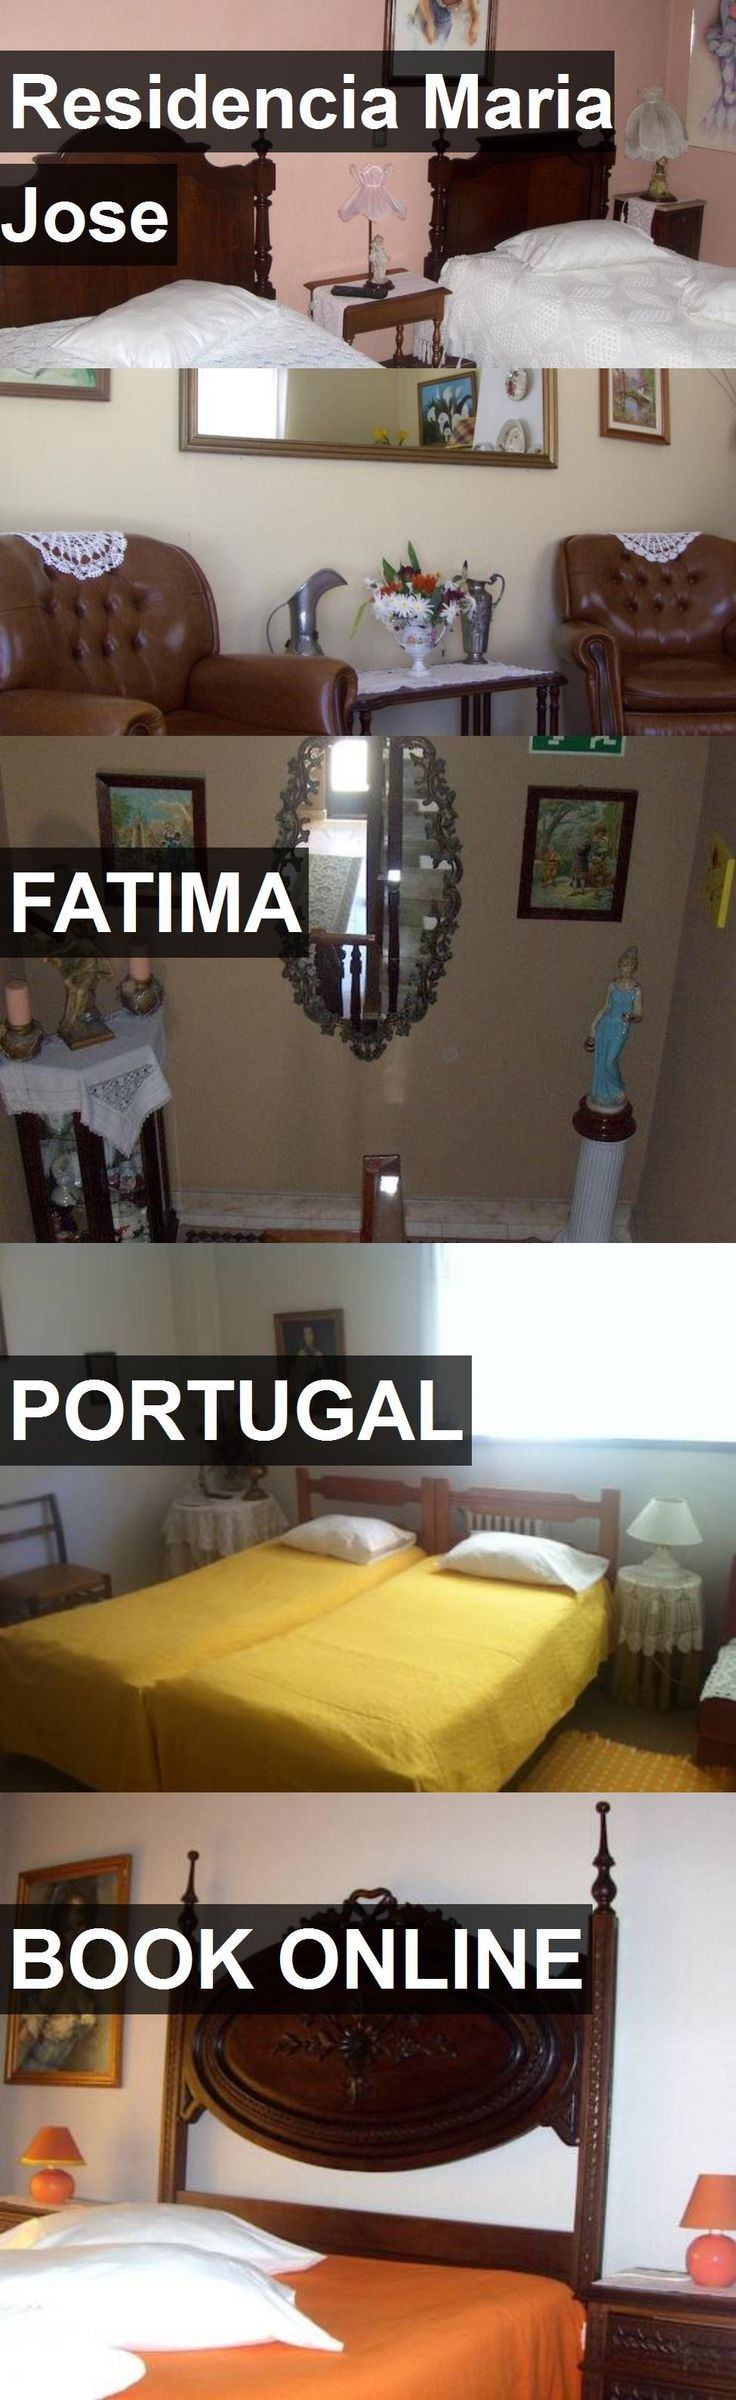 Hotel Residencia Maria Jose in Fatima, Portugal. For more information, photos, reviews and best prices please follow the link. #Portugal #Fatima #travel #vacation #hotel